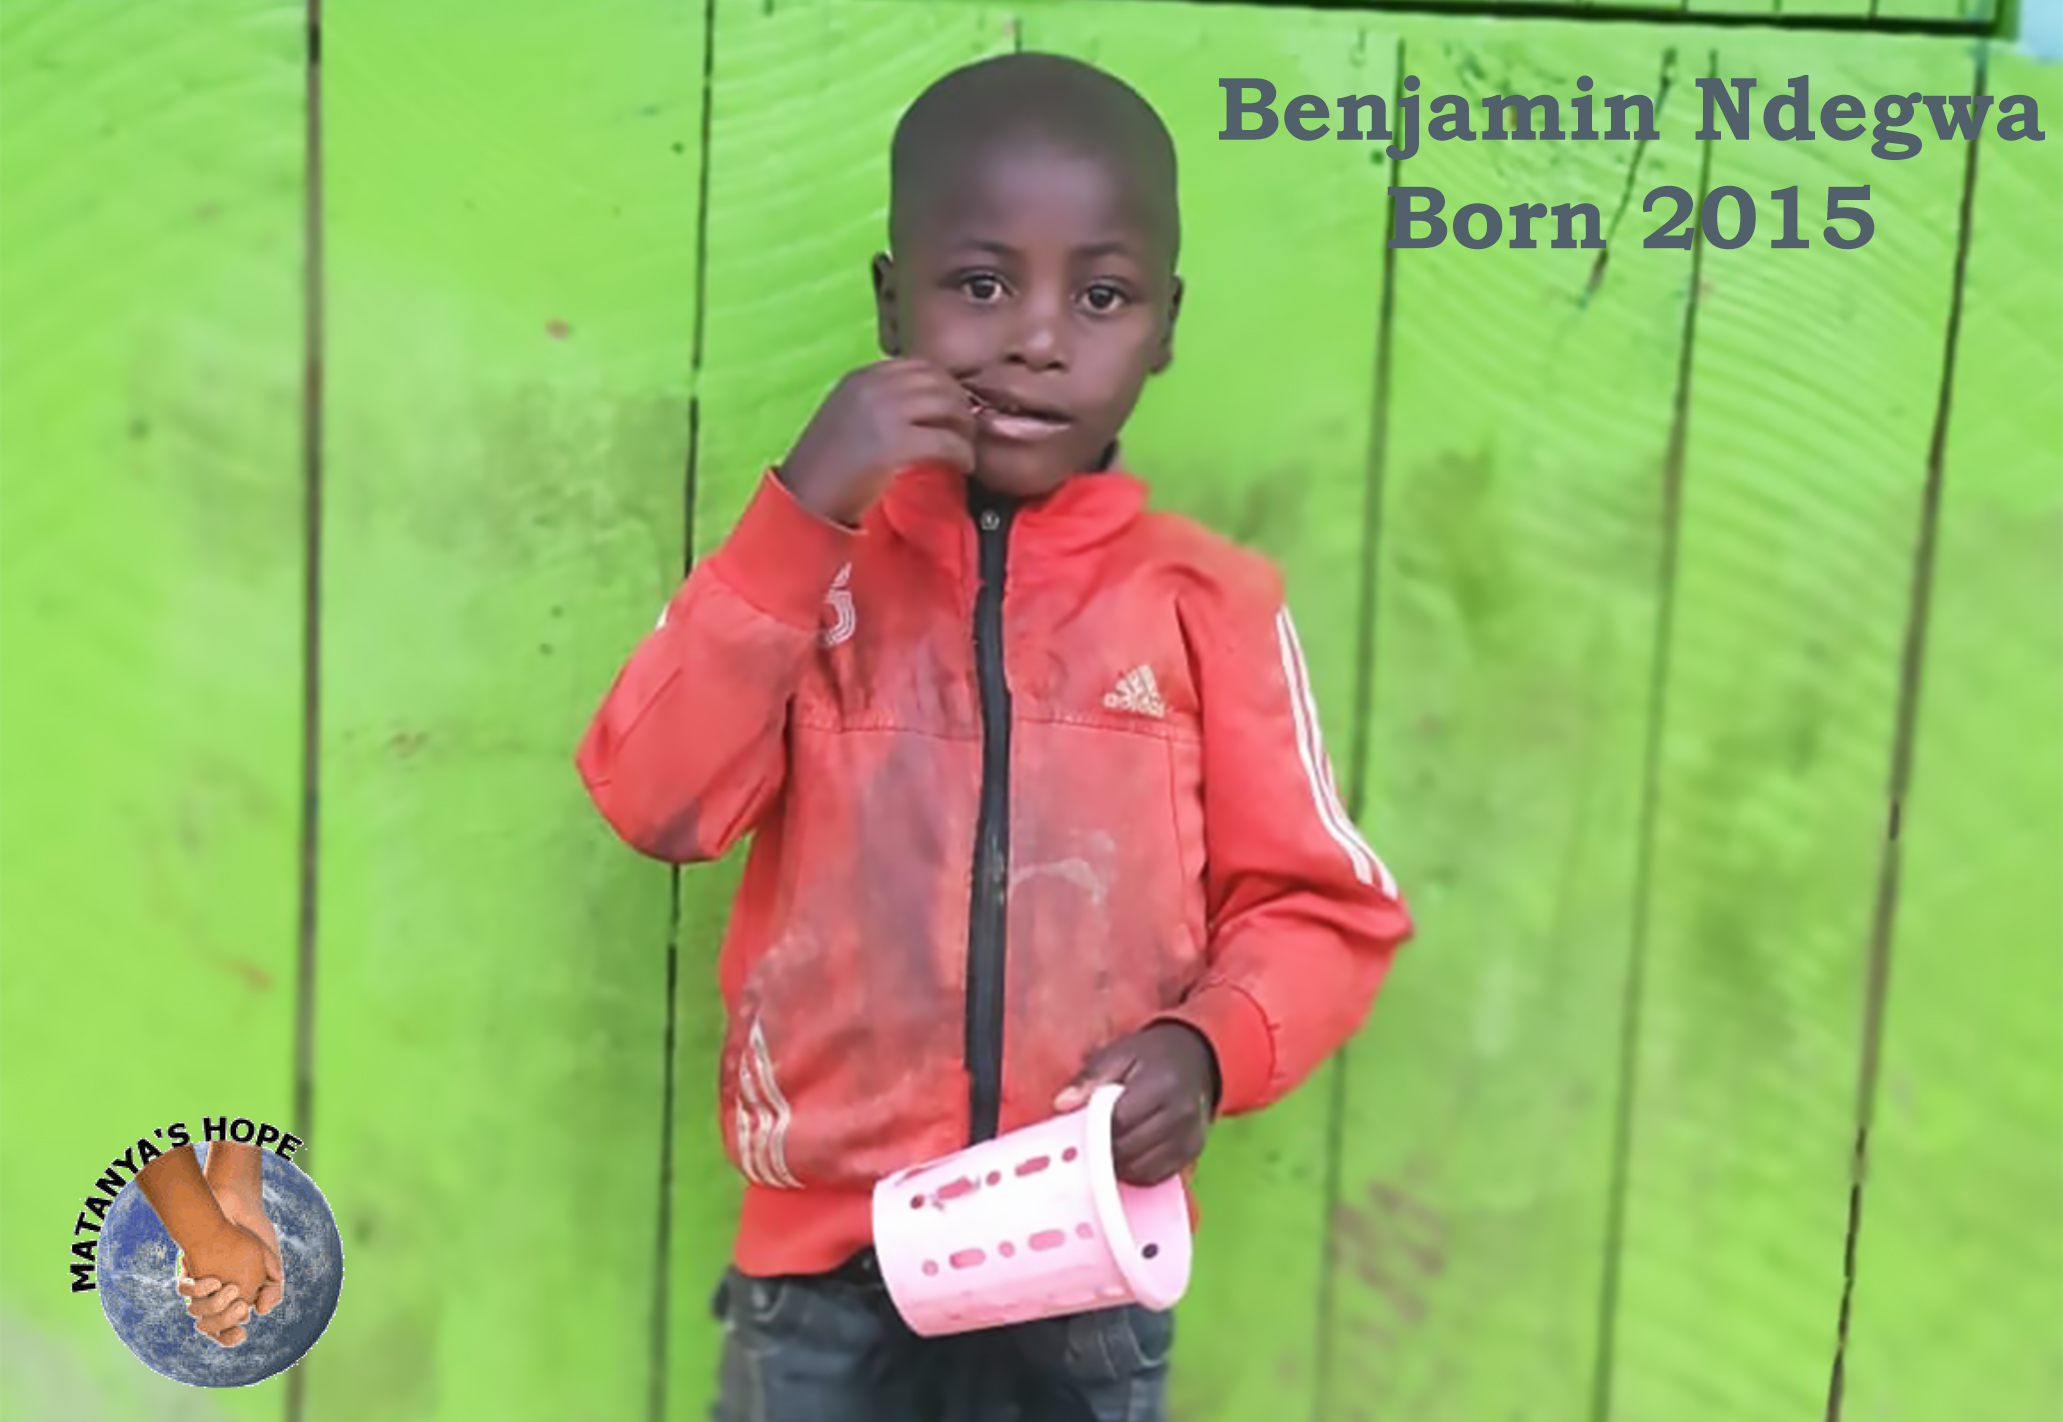 Benjamin and his siblings Simon, Mercy and a baby sister are forced to feed from trash for their very survival.